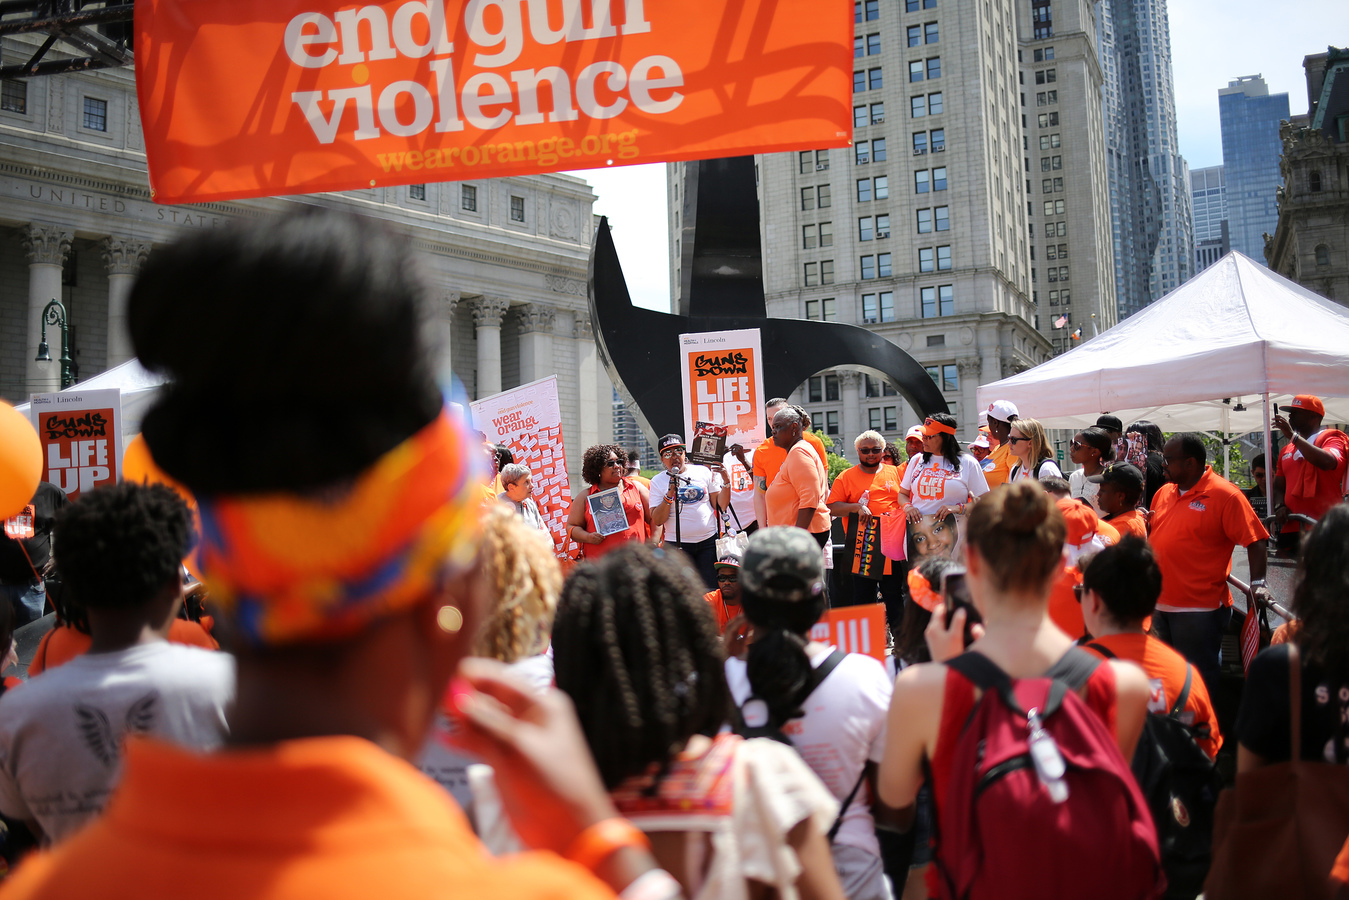 Solidarity Walk With Gun Violence Survivors Brooklyn Bridge 6/8/19 Survivors share the names of loved ones lost to gun violence